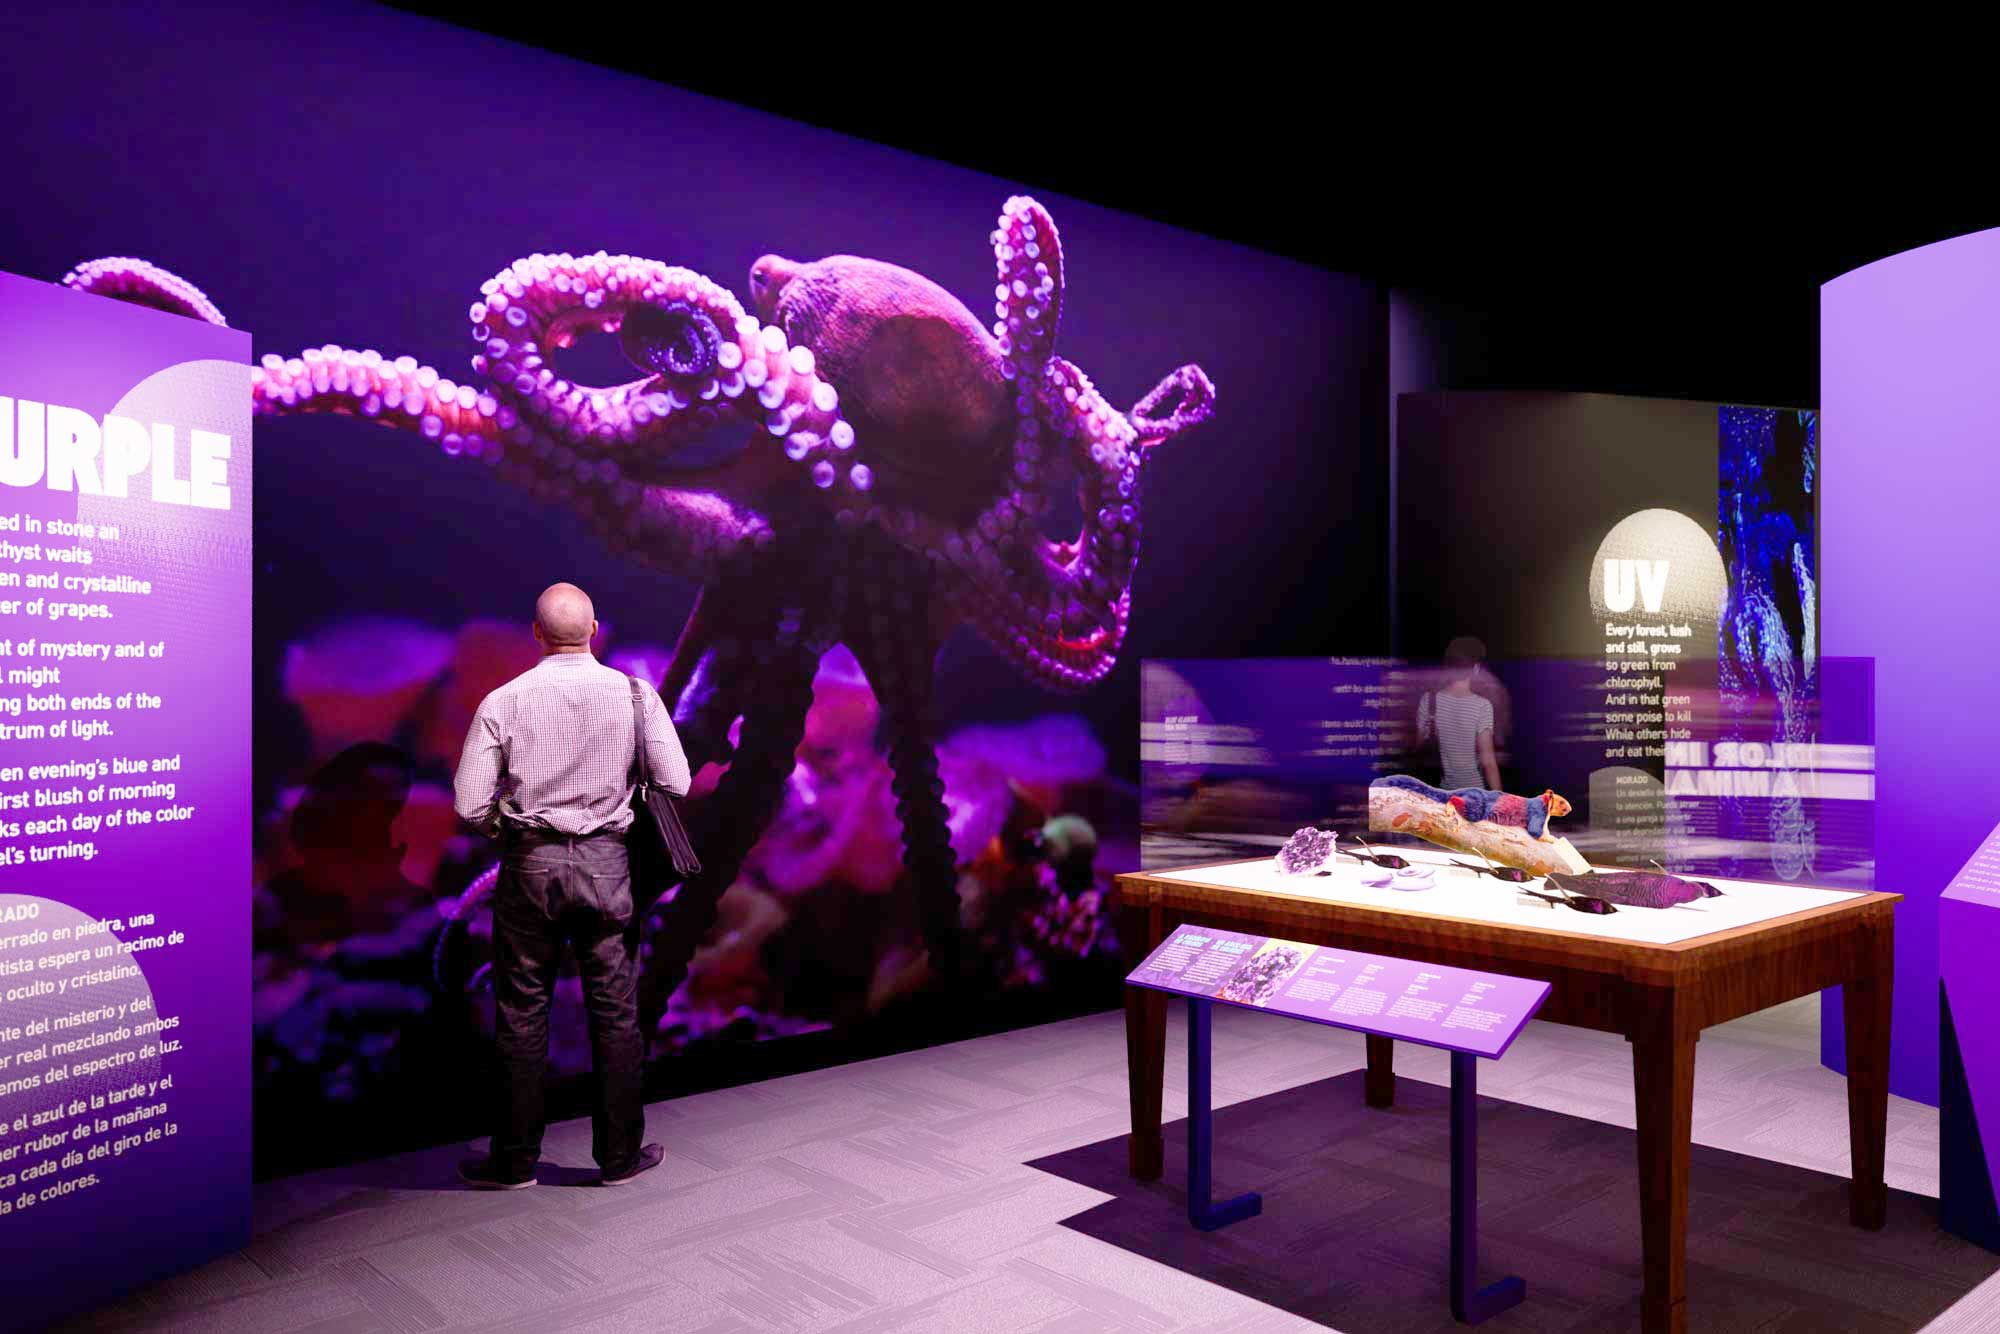 Rendering of a purple gallery in an exhibition. The far wall features a large-scale mural of a purple octopus.